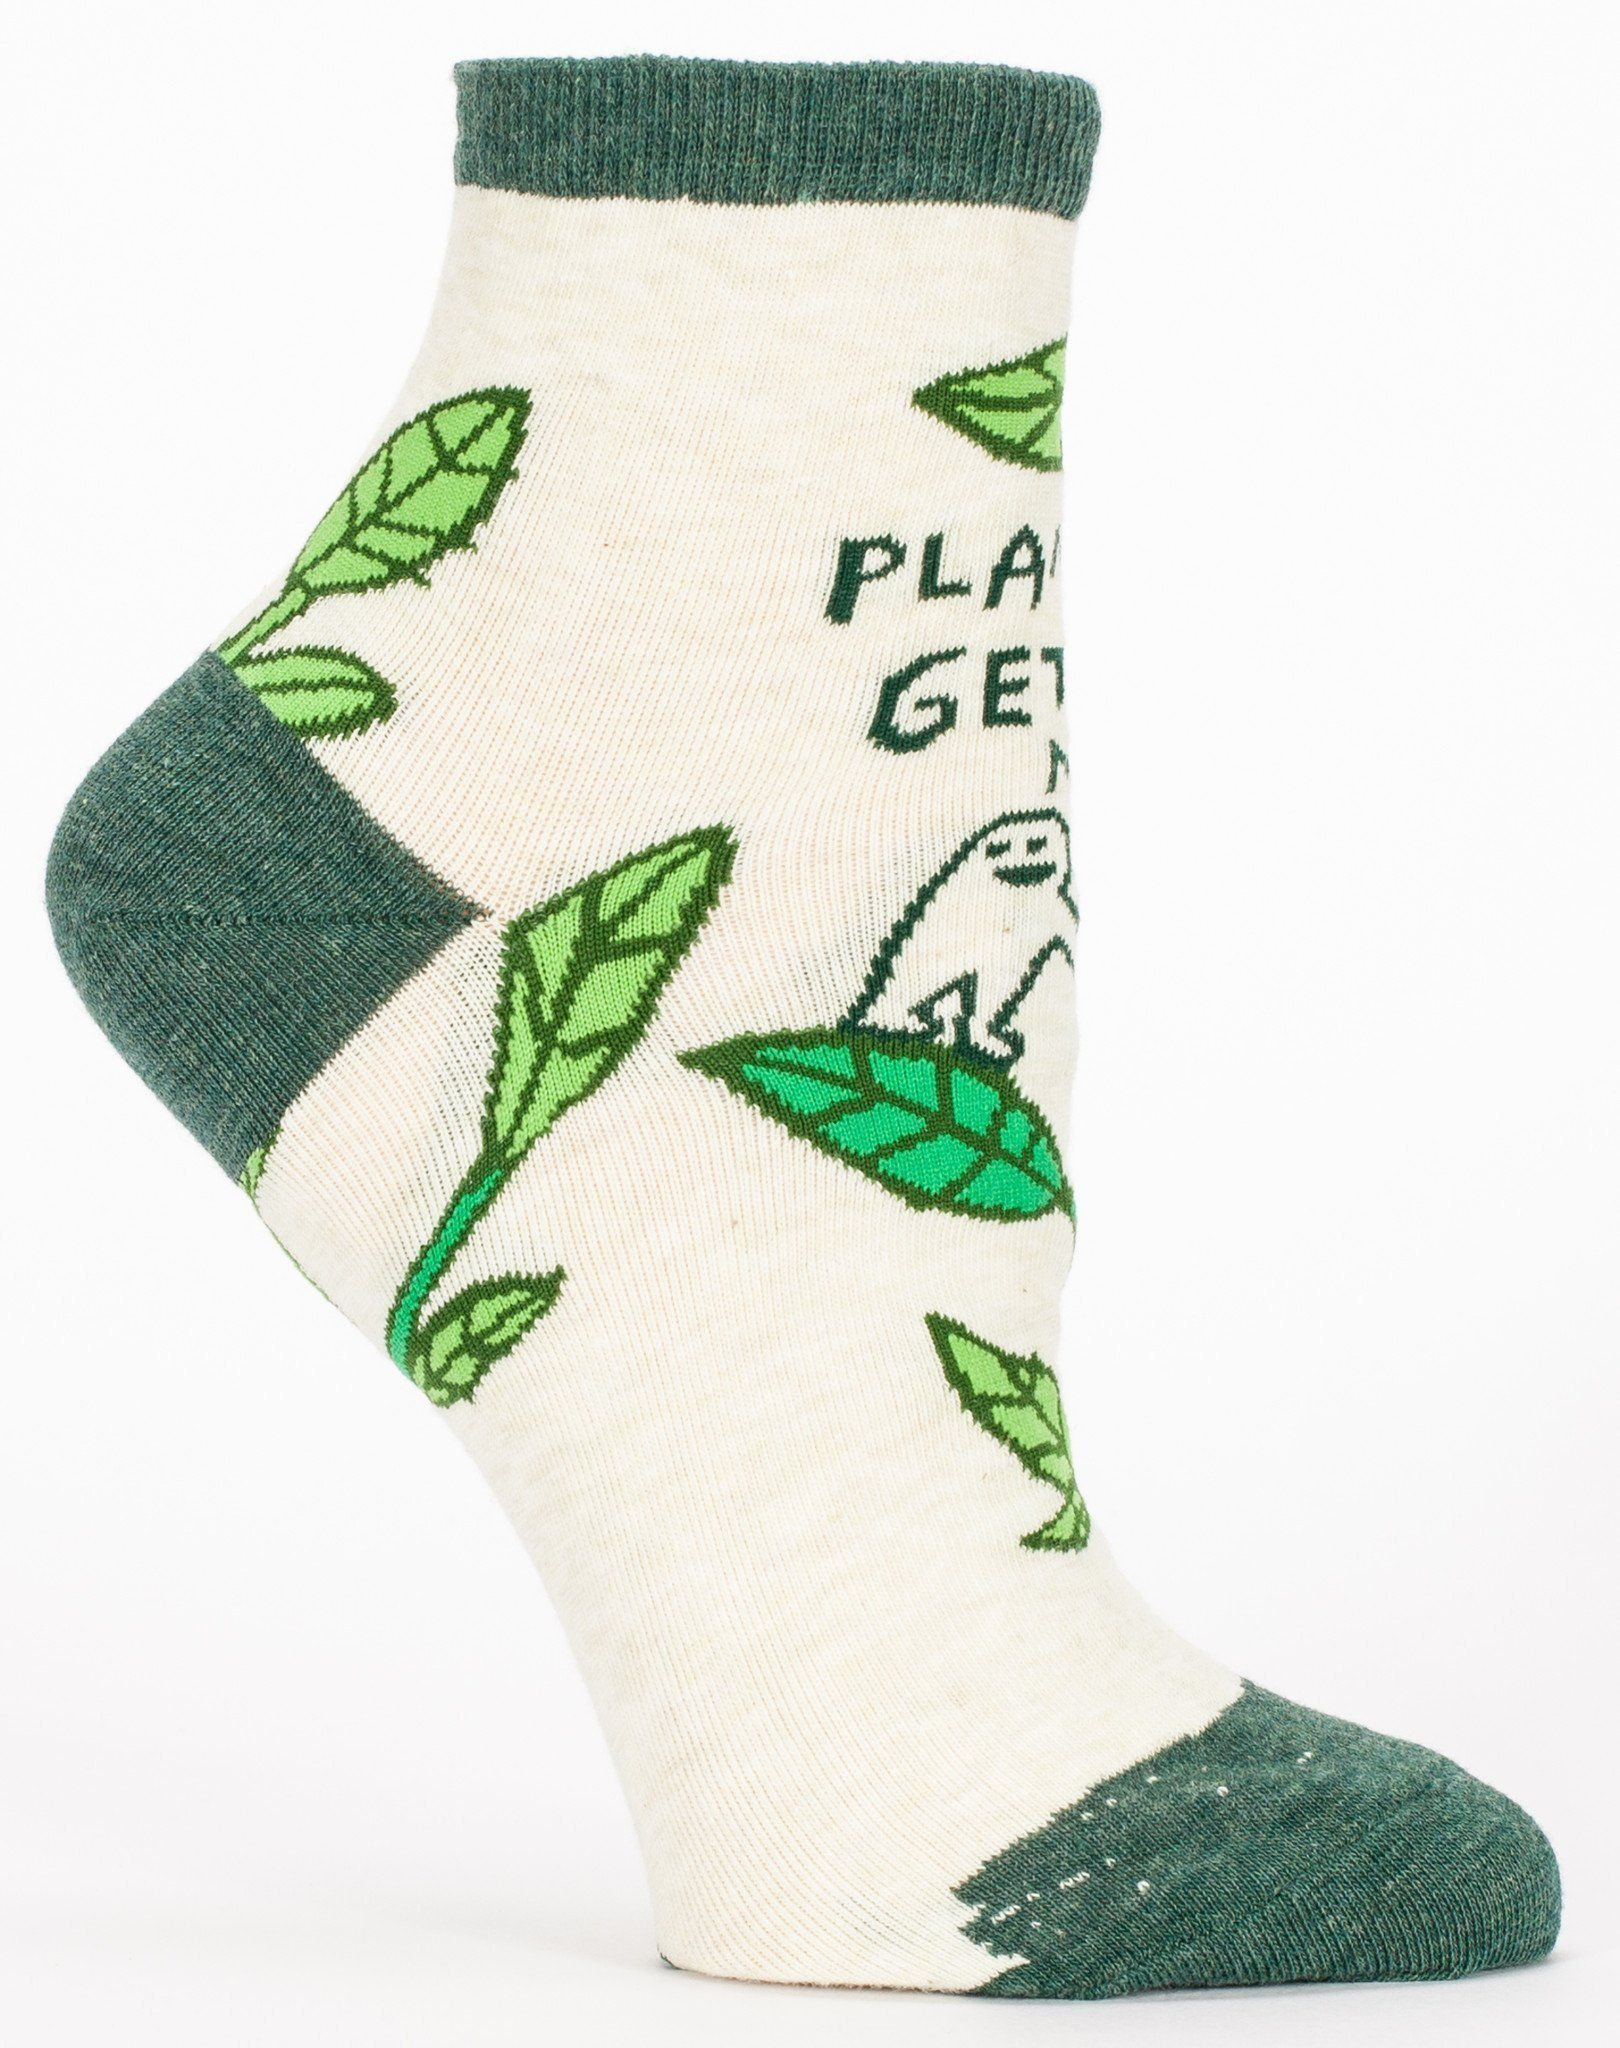 Blue Q - Plants Get Me Ankle Socks | Women's - Knock Your Socks Off